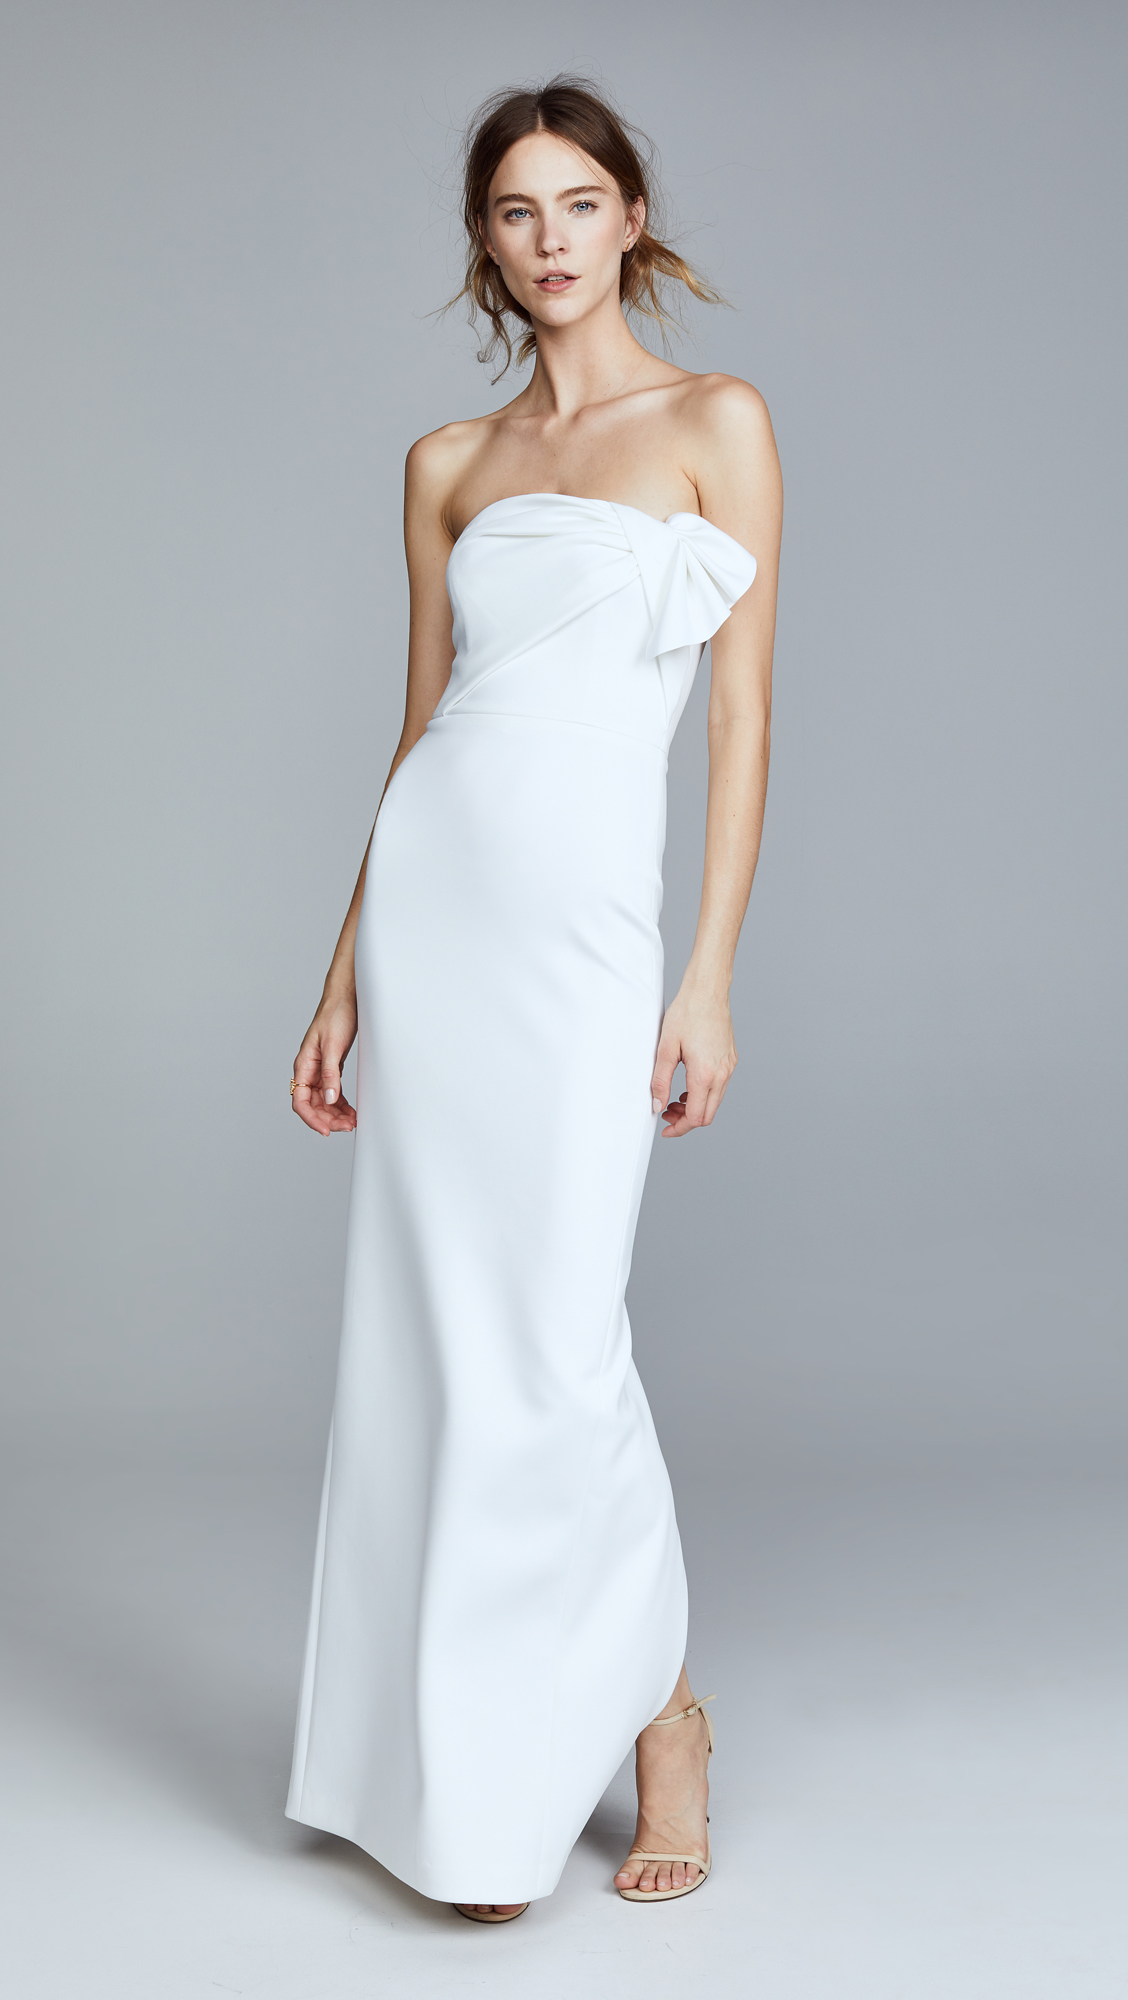 DIVINA GOWN BY BLACK HALO, $575 ON SHOPBOP.COM